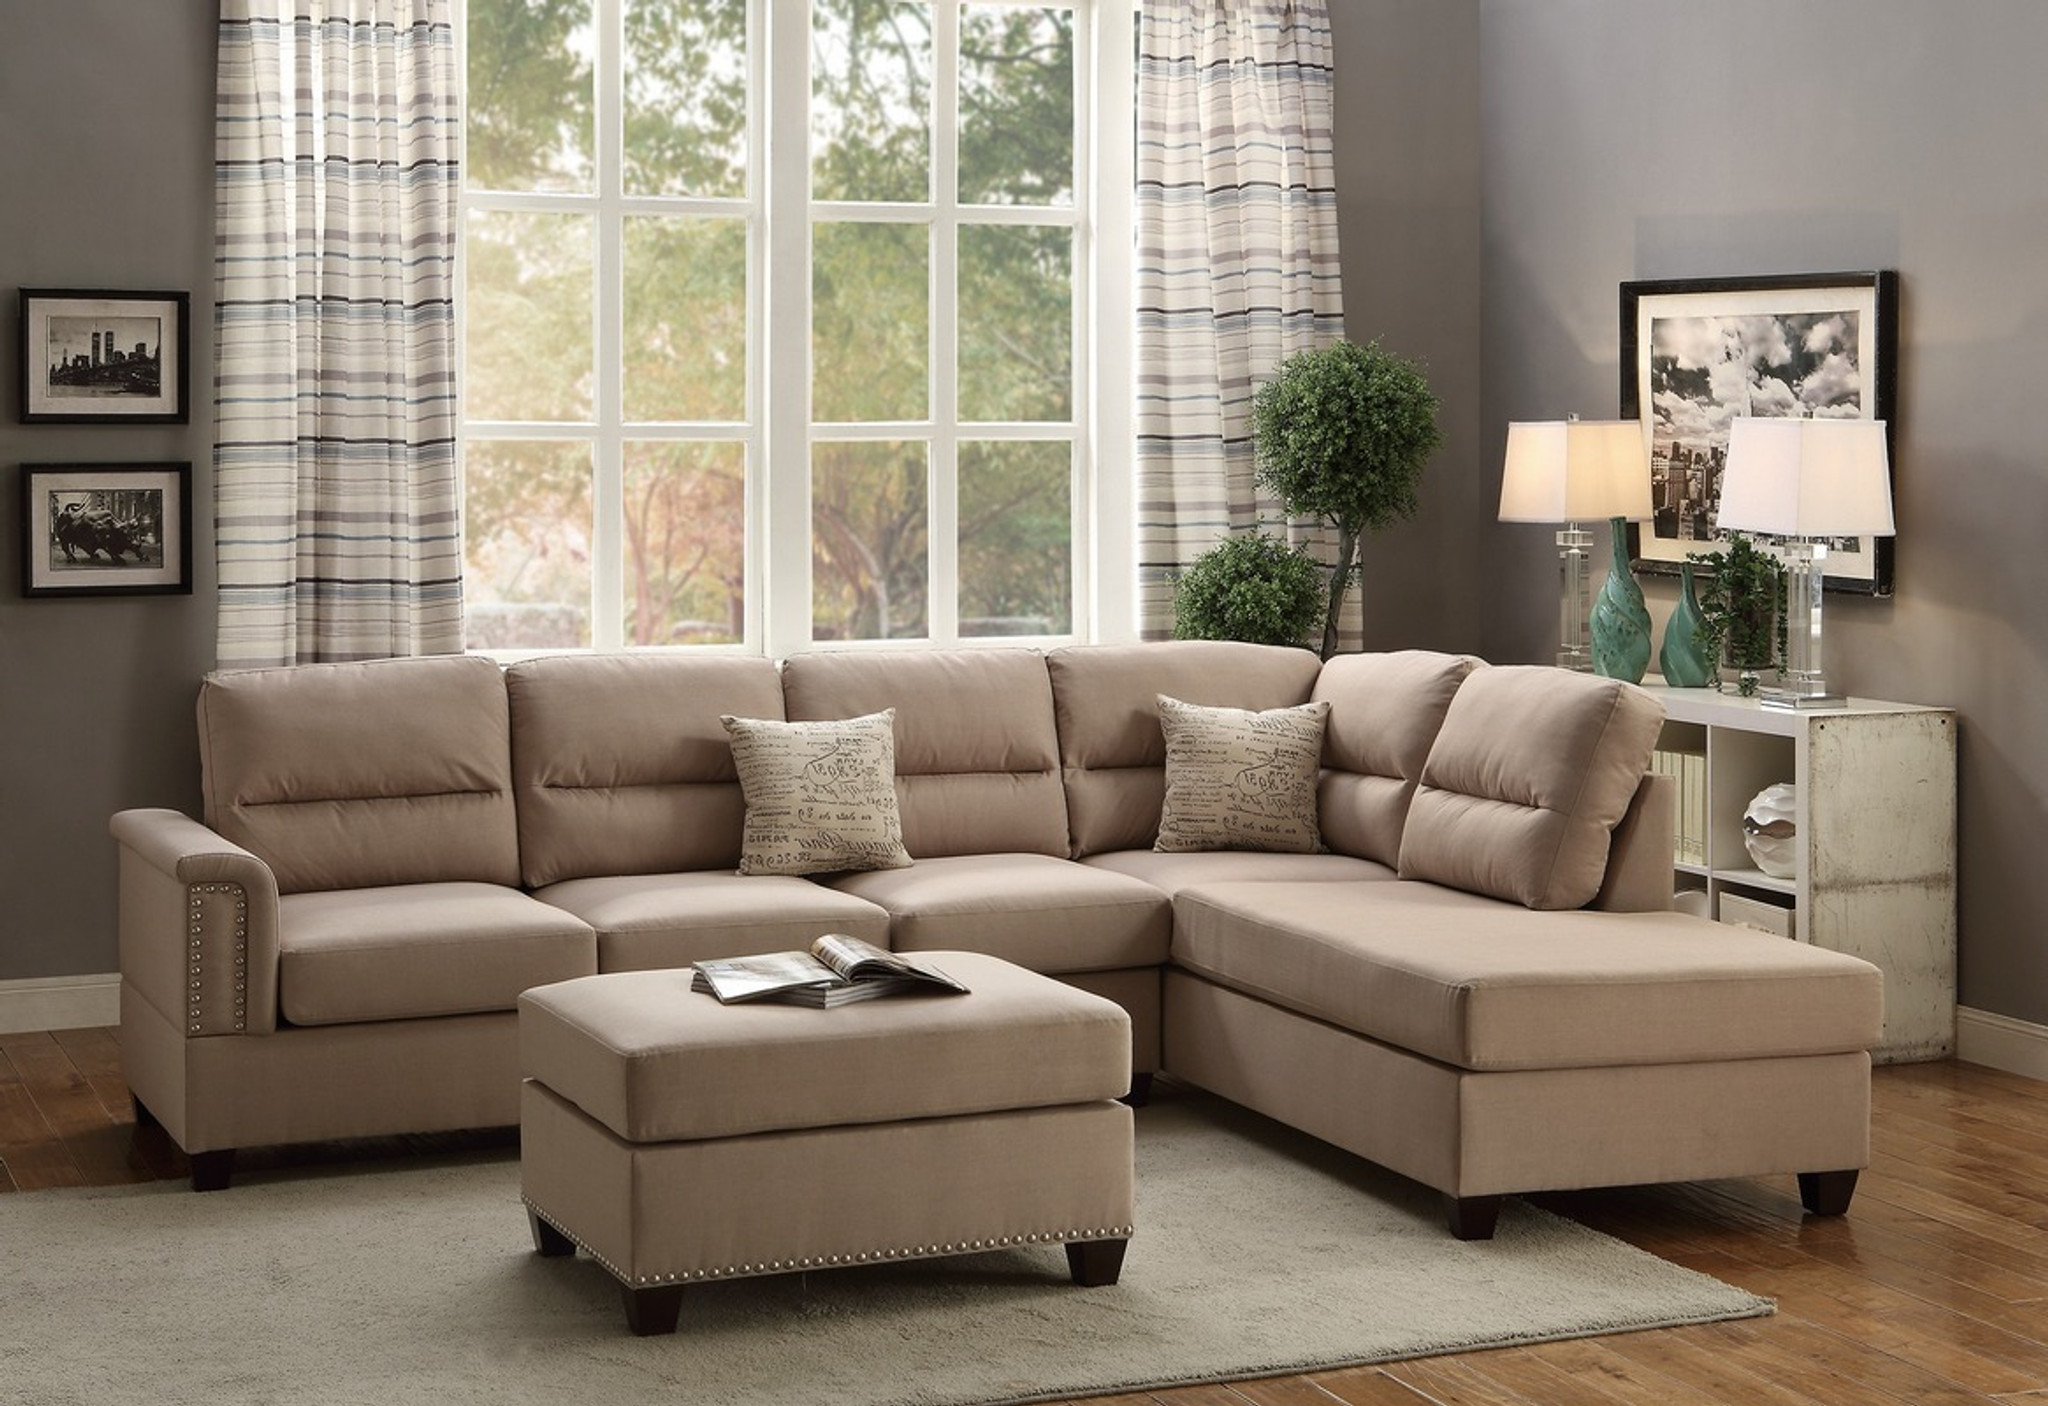 F7614 3pcs Sand Sectional Sofa Set With Ottoman By Poundex